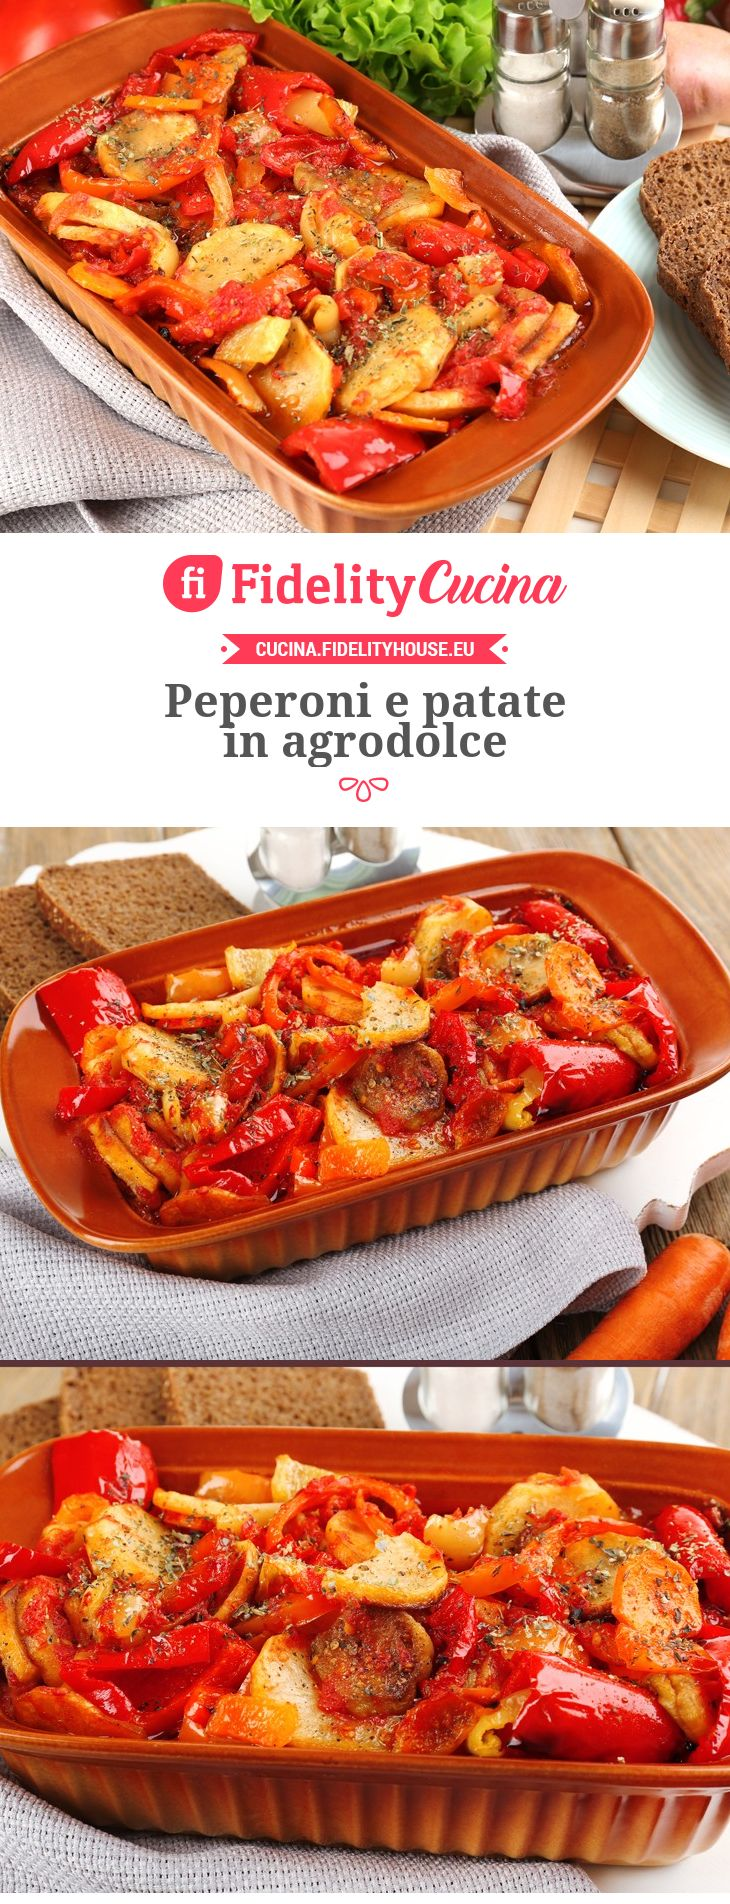 Peperoni e patate in agrodolce